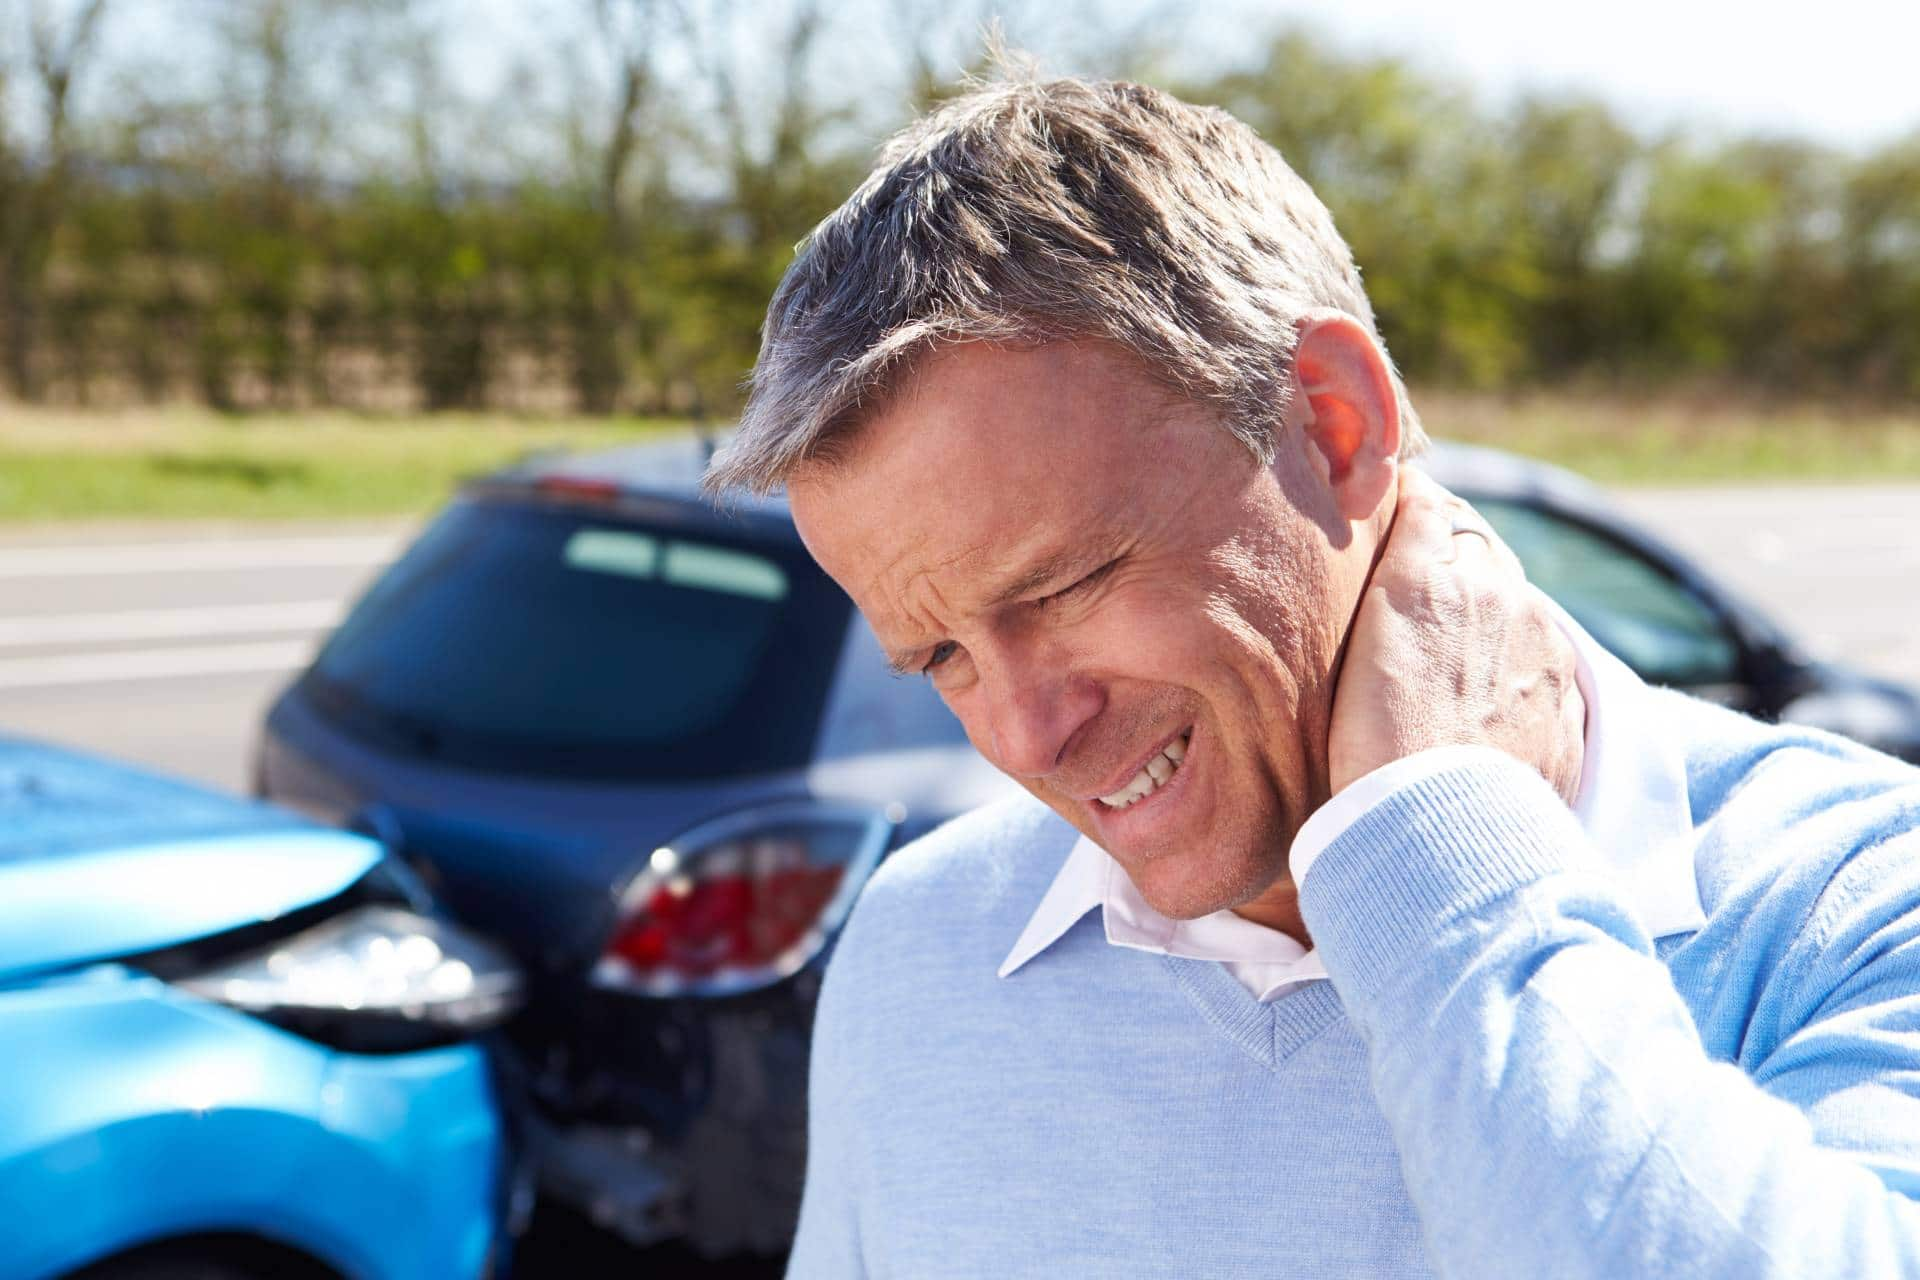 Injured in a car accident? Schedule a free consultation with our personal injury lawyers at the Angell Law Firm in North Buckhead, Ga.